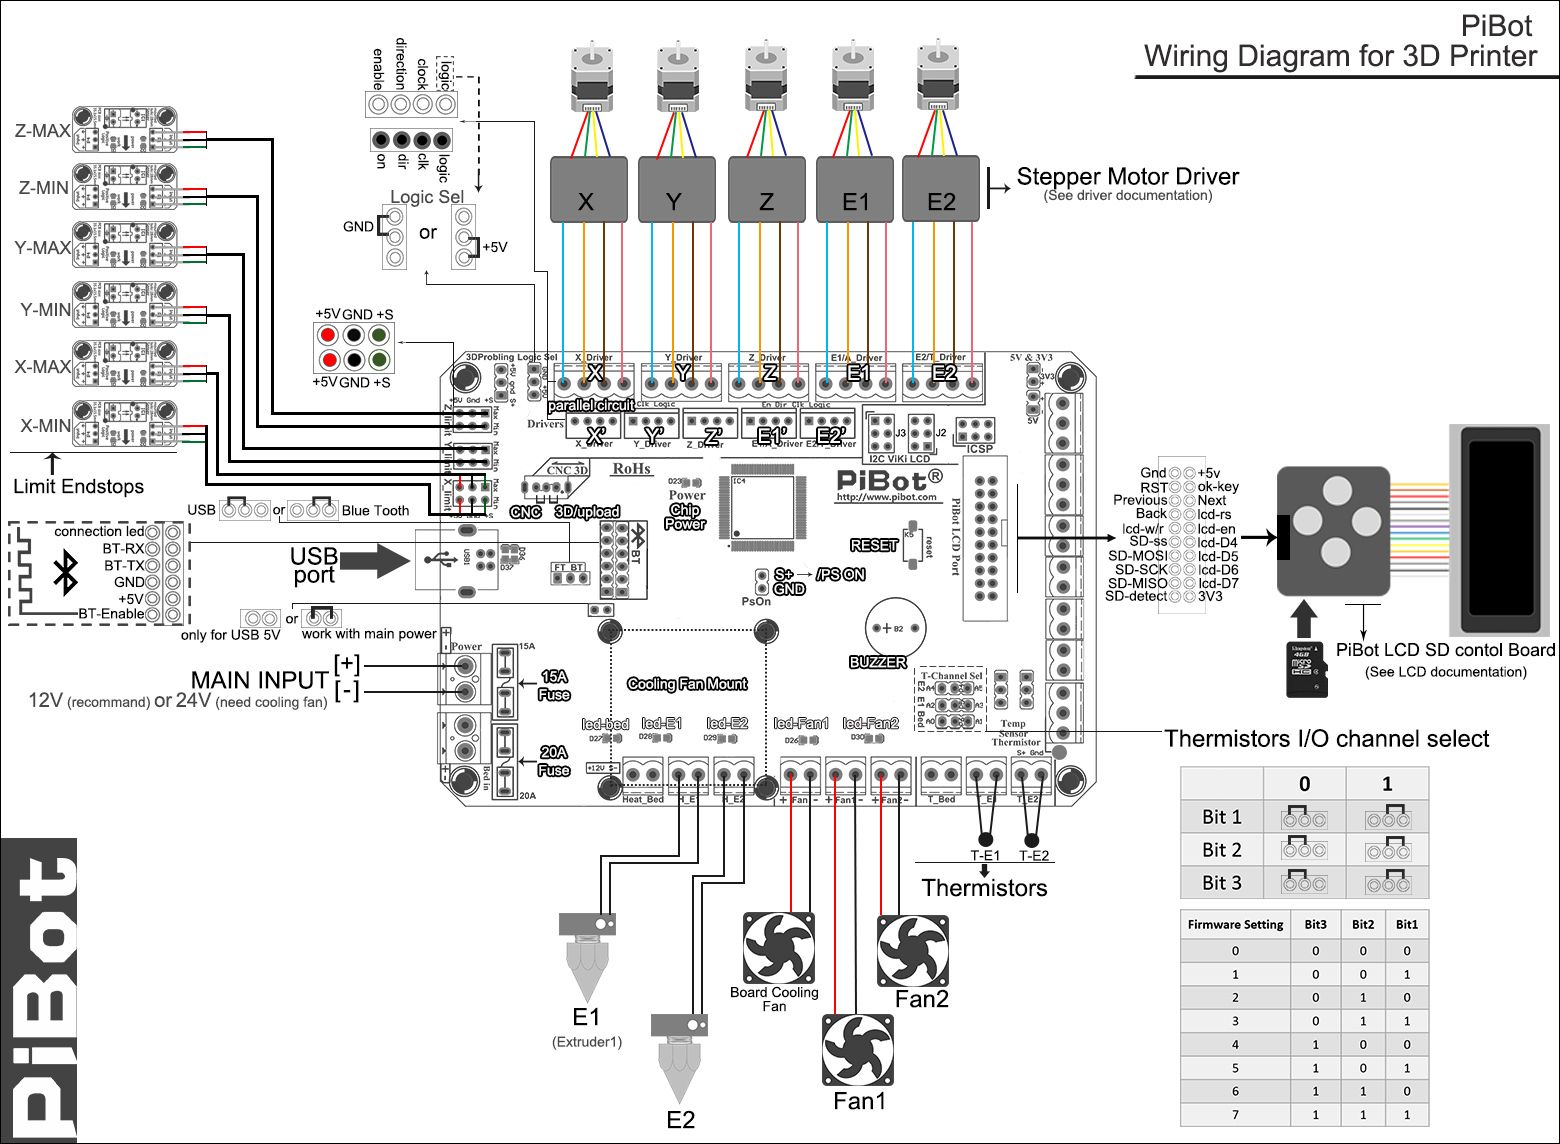 Diagram Rj 48c File Jz16860 on t1 wiring digital, ip pbx diagram, t1 circuit diagram, t1 crossover cable diagram, t1 service diagram, rj45 loopback diagram, t1 hardware diagram, t1 network diagram, t1 pinout diagram, rj-48 pinout diagram, voice t1 connection diagram, cat 6 crossover cable diagram, security system diagram, t1 cabling diagram, t1 t2 t3 t4 motor wiring, t1 cable wiring, cat 5 crossover cable pinout diagram, t1 wiring scheme, t1 jack wiring, t1 circuit wiring,